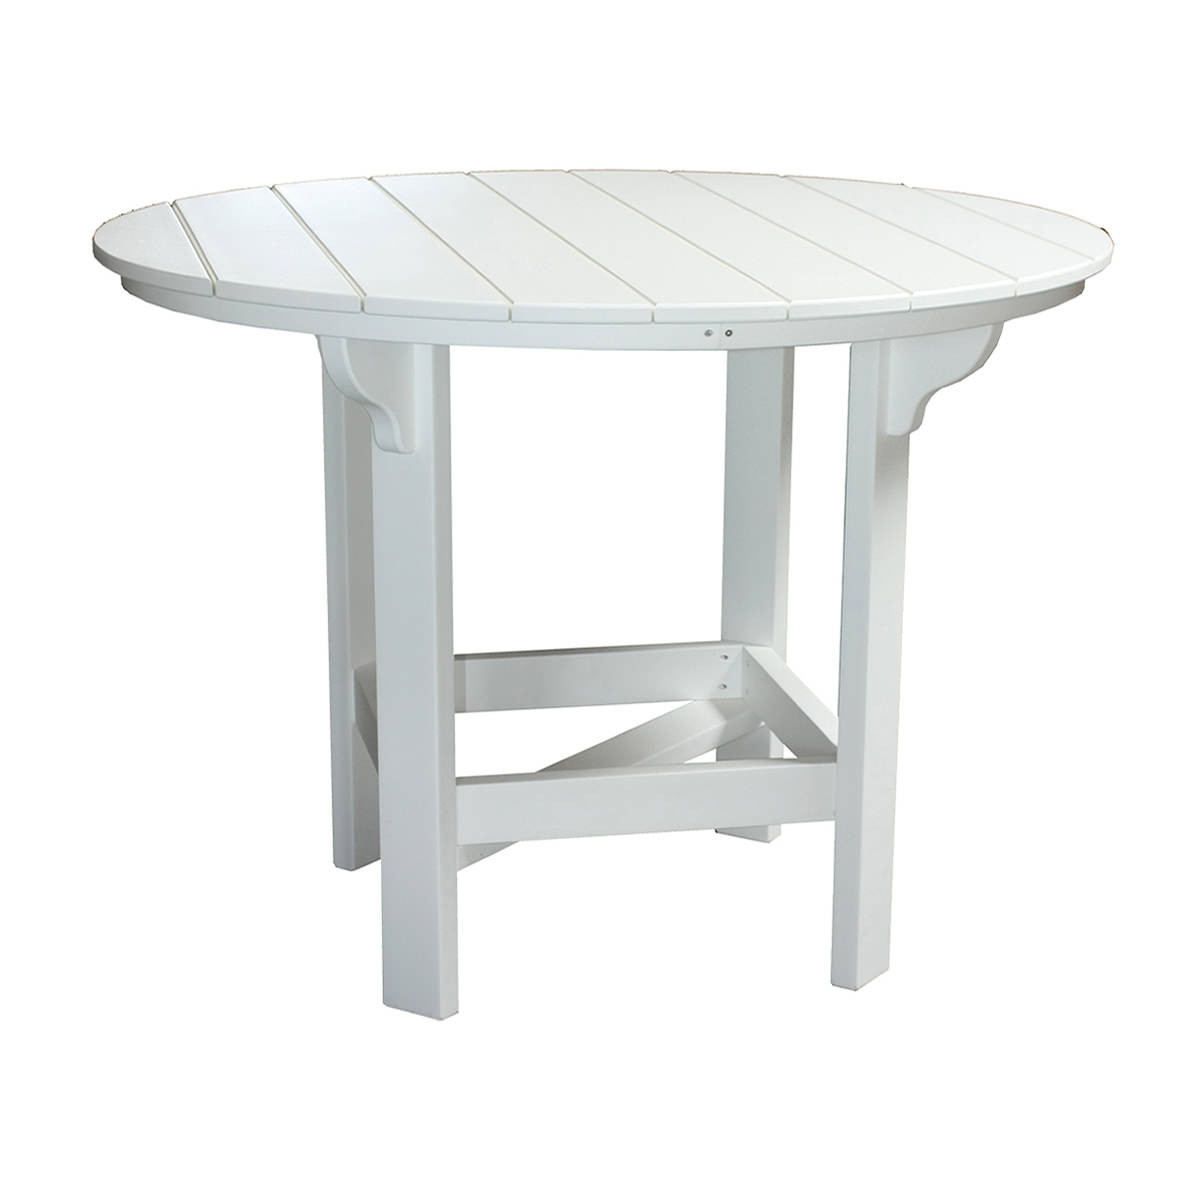 Amish Poly 48in Round Balcony Table